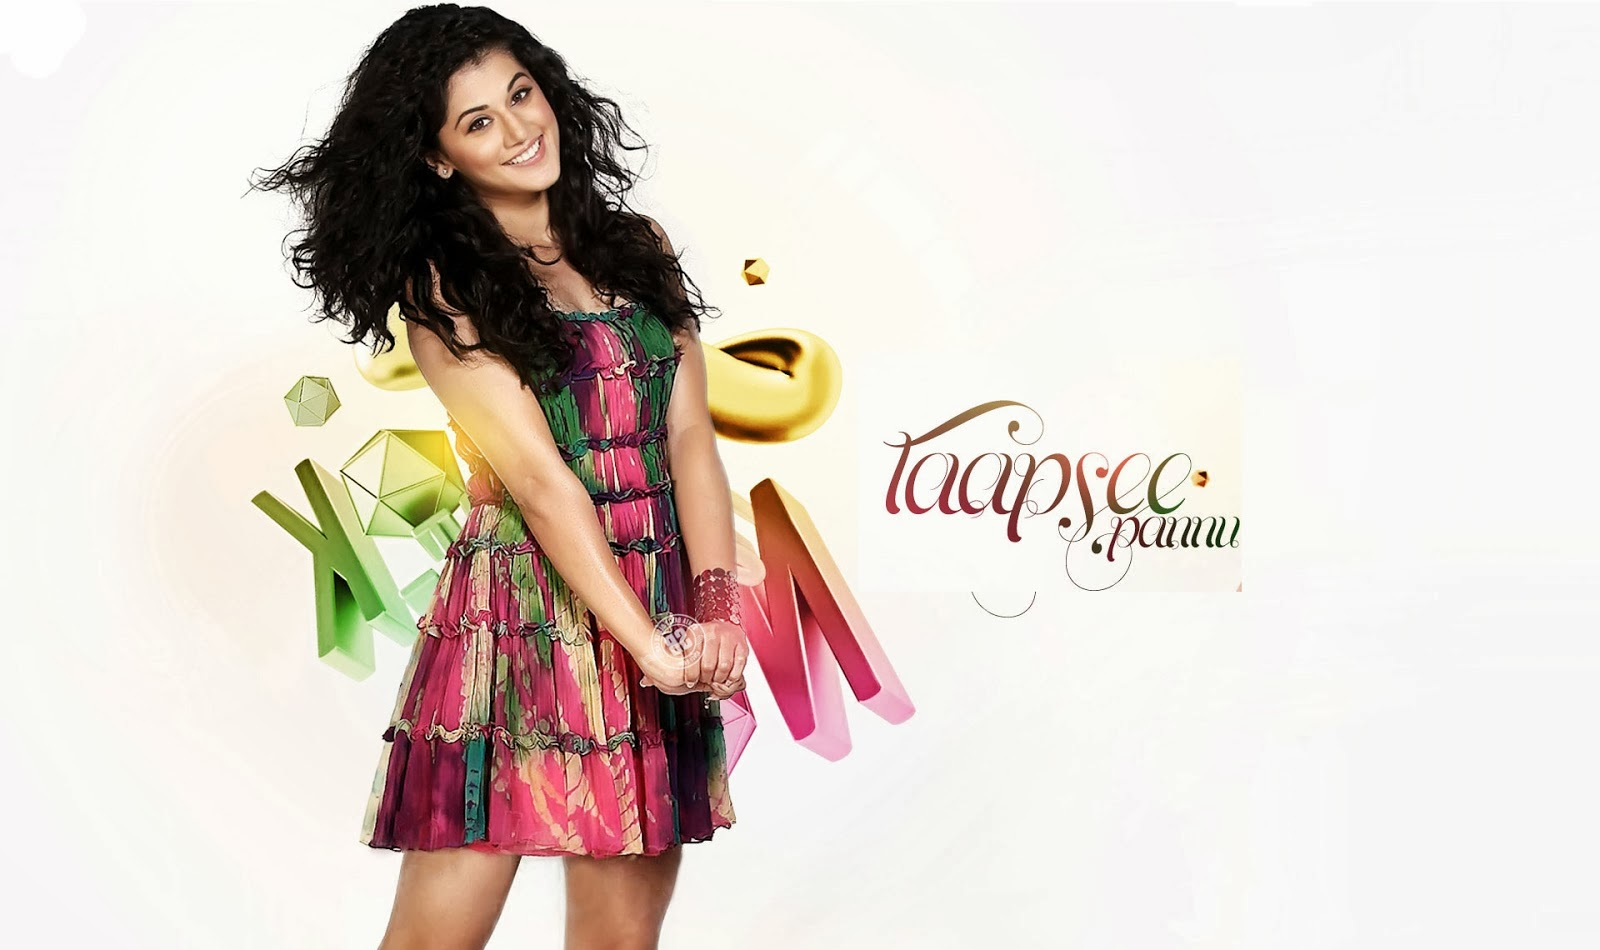 Taapsee Pannu Smile Cute smile of taapsee pannu in